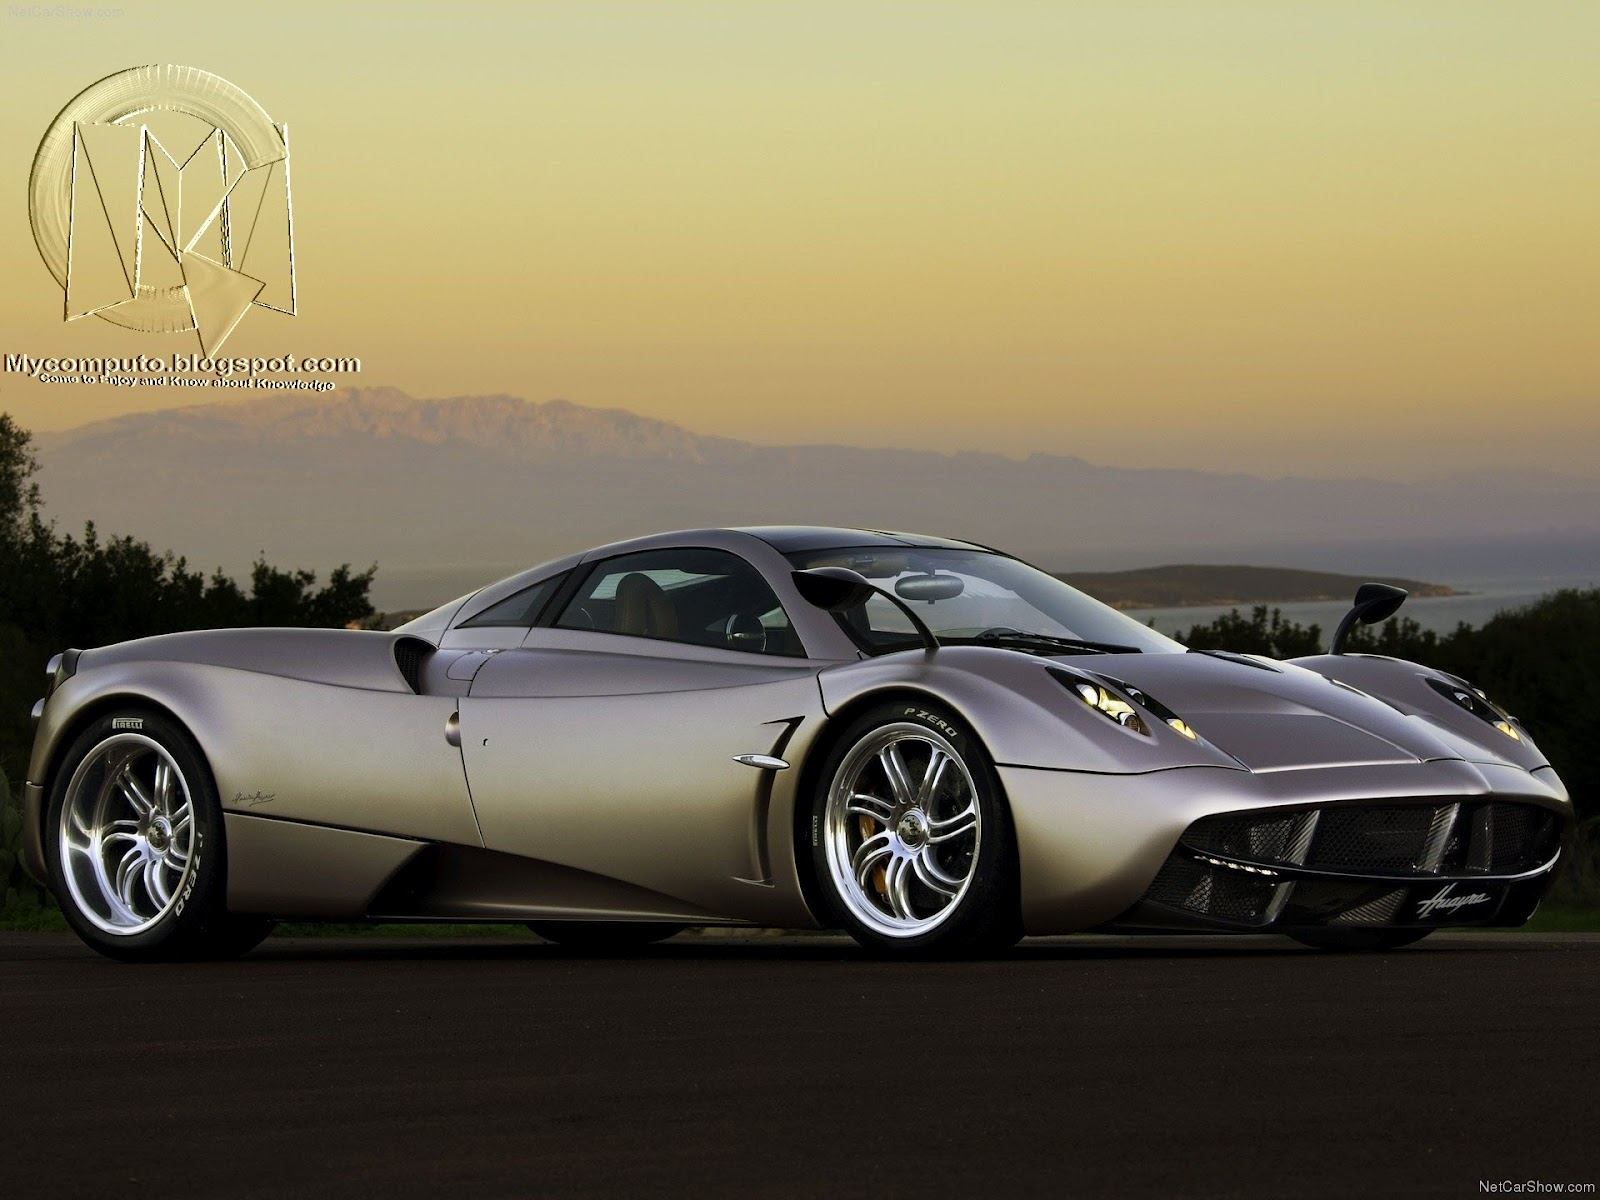 ĊØmþUTO: Most expensive cars in the world 2012 Part 3